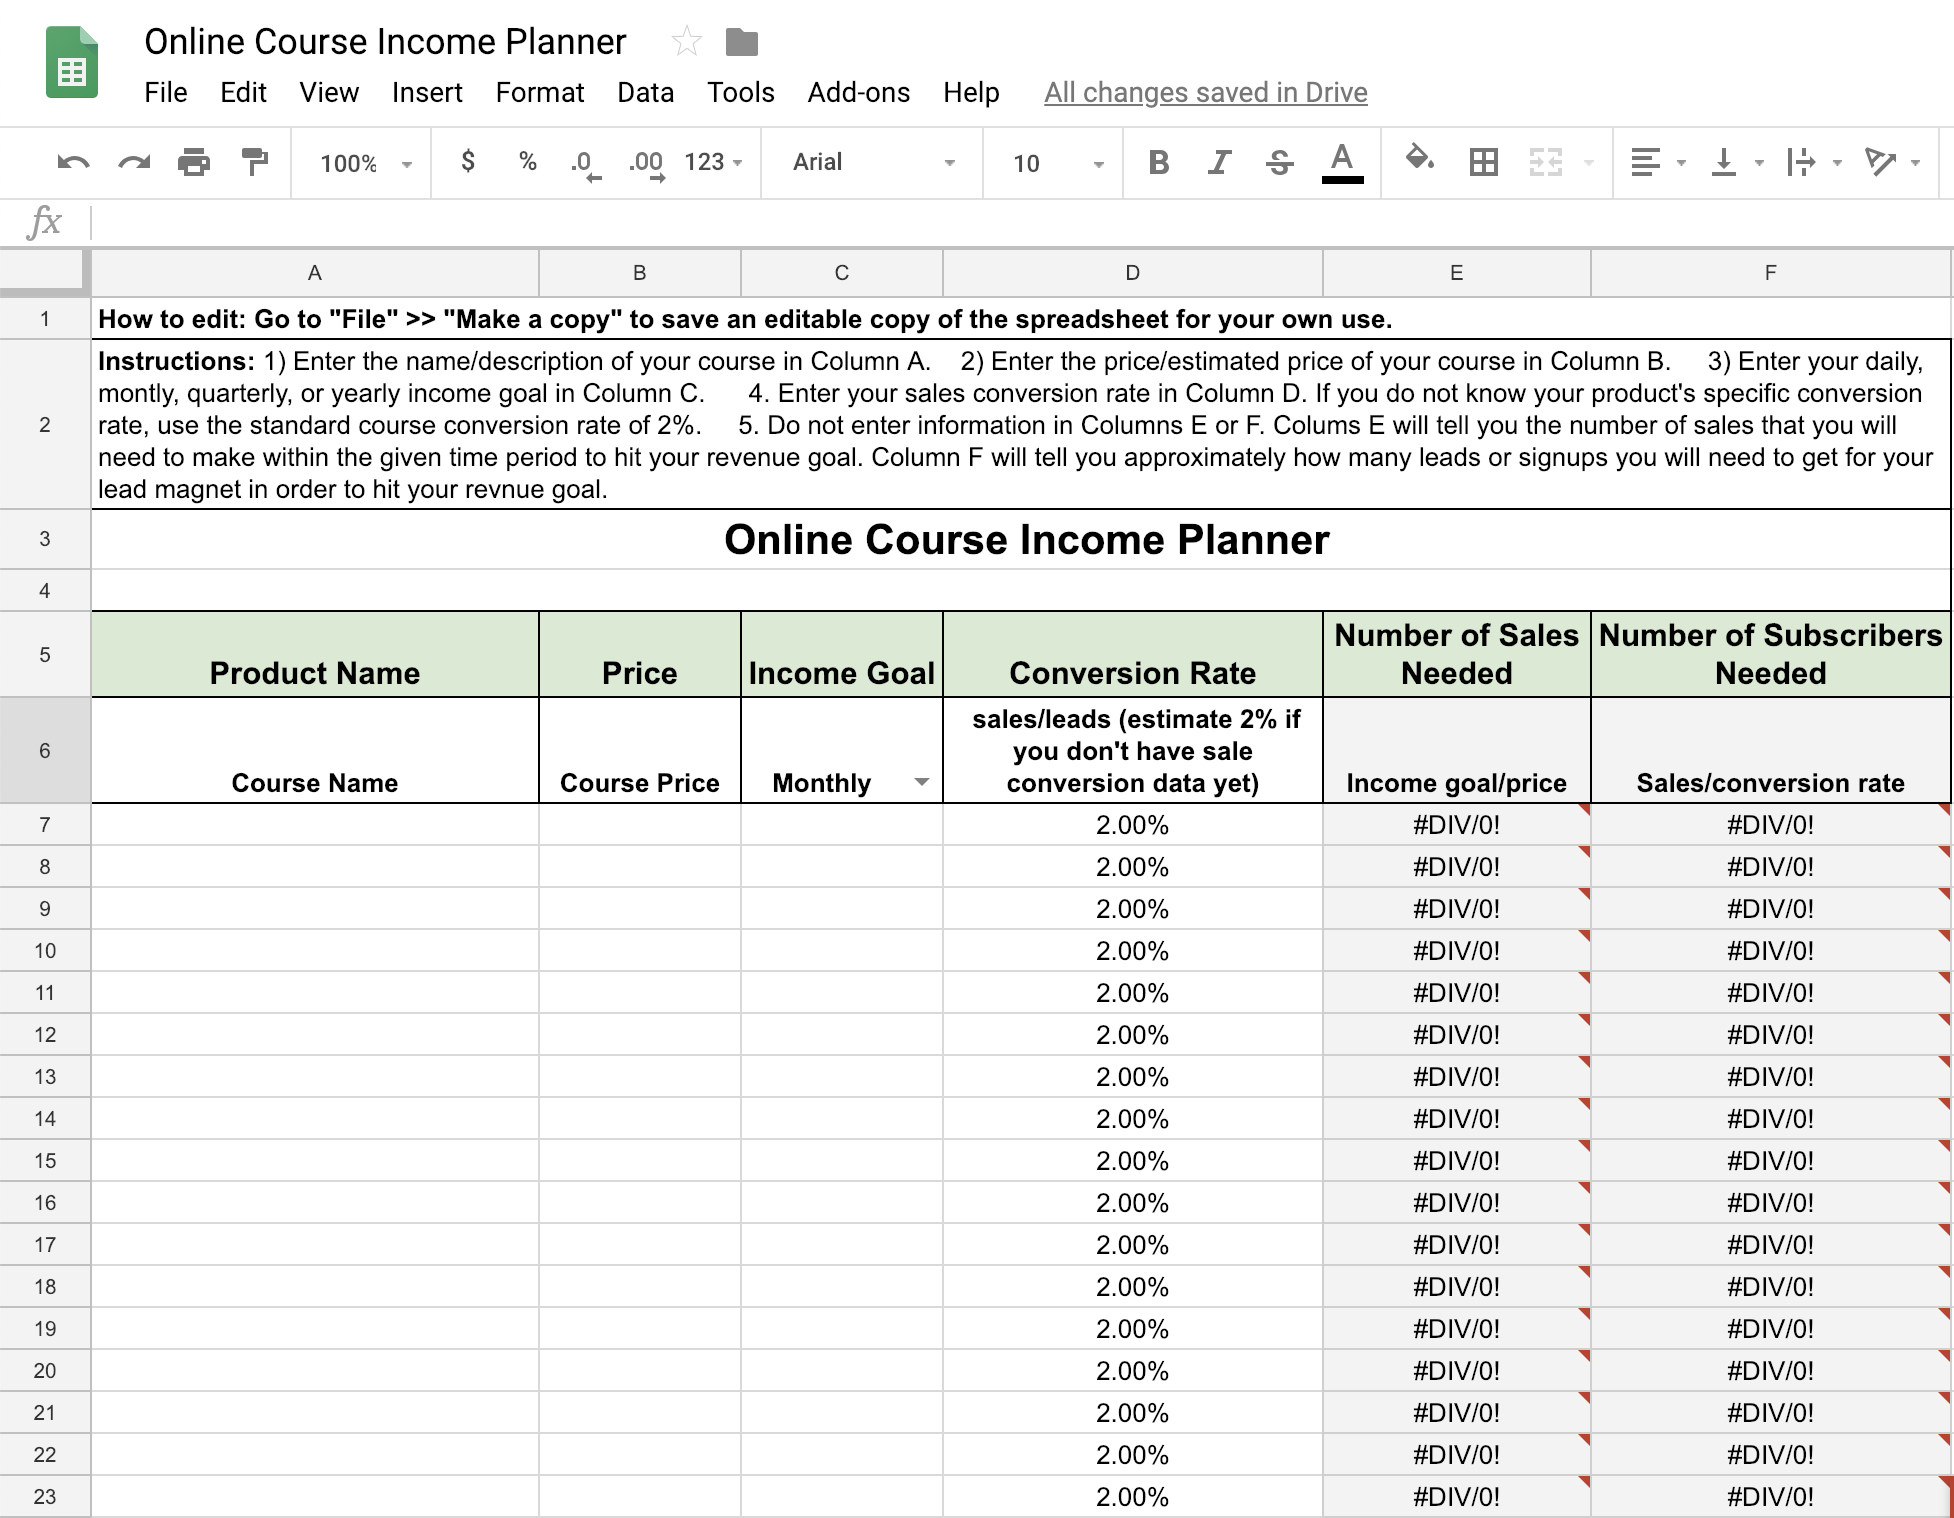 Online Course Income Planner .jpg